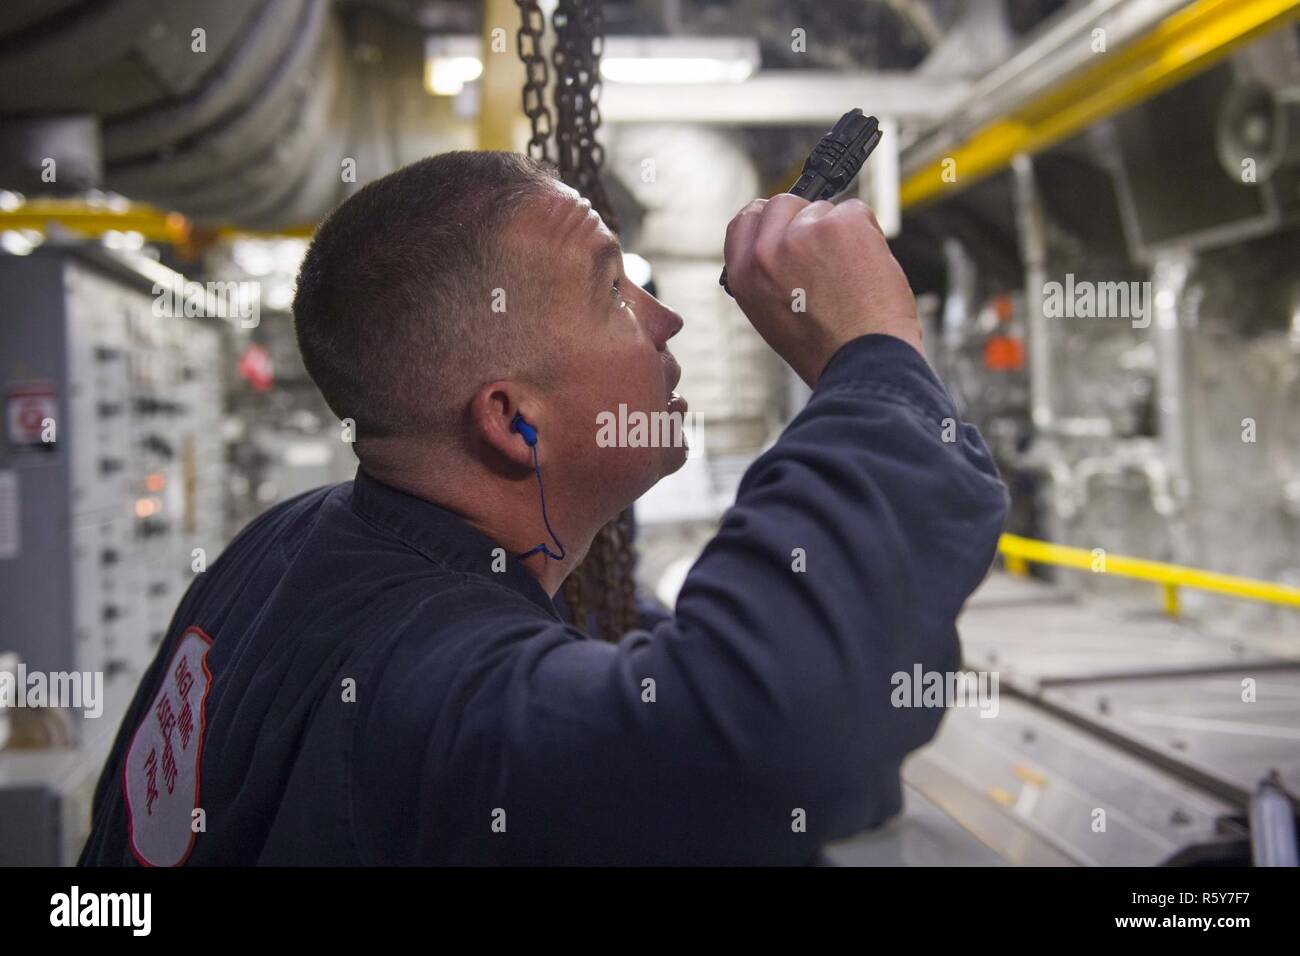 CHANGI NAVAL BASE, Singapore (April 24, 2017) Lt. Cmdr. Edward Davis, assigned to Engineering Assessments Pacific, conducts a safe-to-operate walkthrough in a main engine room during Engineering Operations Certification aboard littoral combat ship USS Coronado (LCS 4). Coronado is on a rotational deployment in U.S. 7th Fleet area of responsibility, patrolling the region's littorals and working hull-to-hull with partner navies to provide 7th Fleet with the flexible capabilities it needs now and in the future. Stock Photo